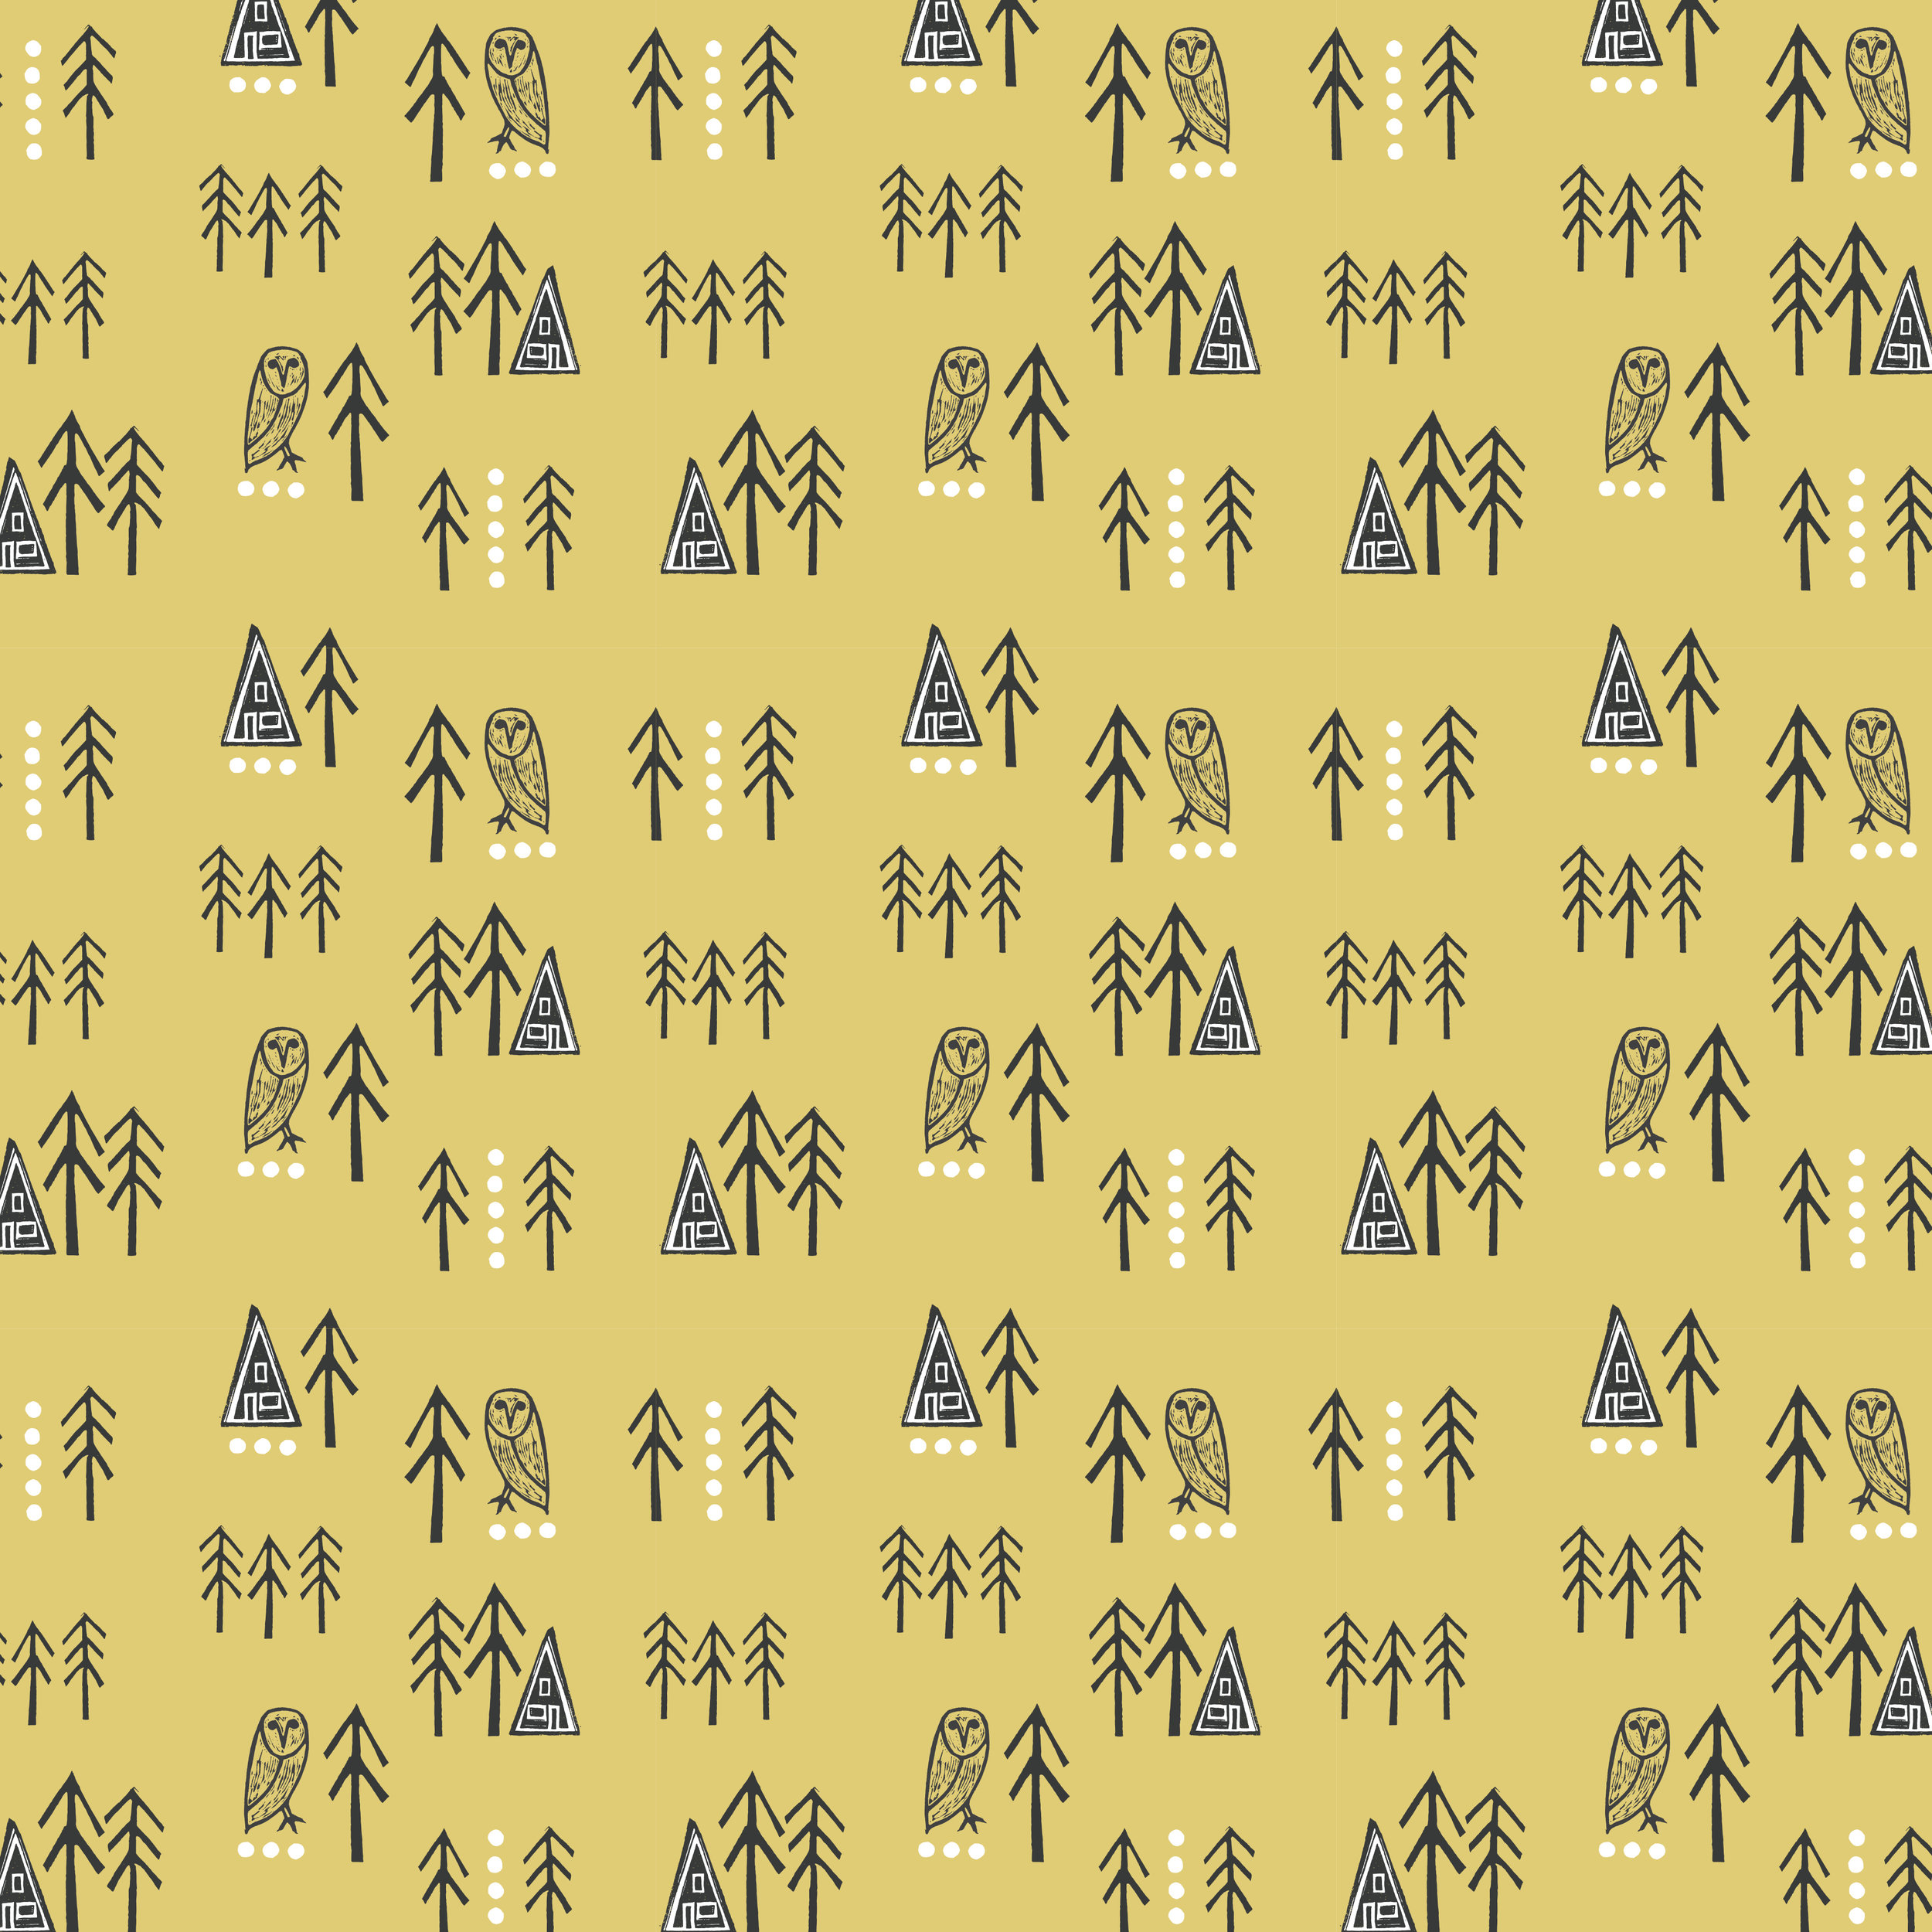 Cabin Life pattern_gold_for proofing.jpg